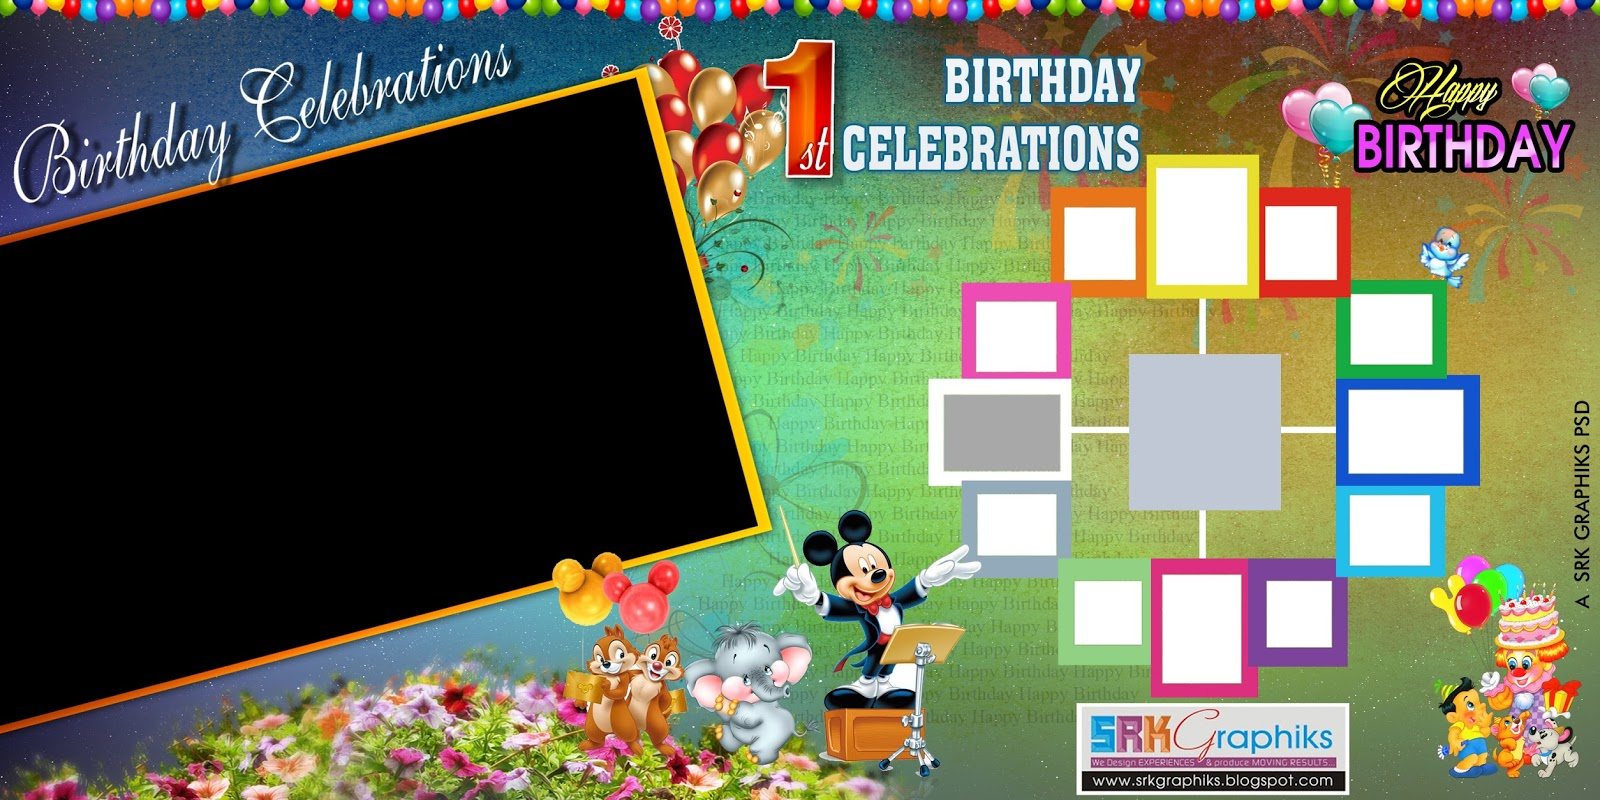 birthday banner design templates ; 5%252B%2525C3%252597%252B10%252B%2525281%252529